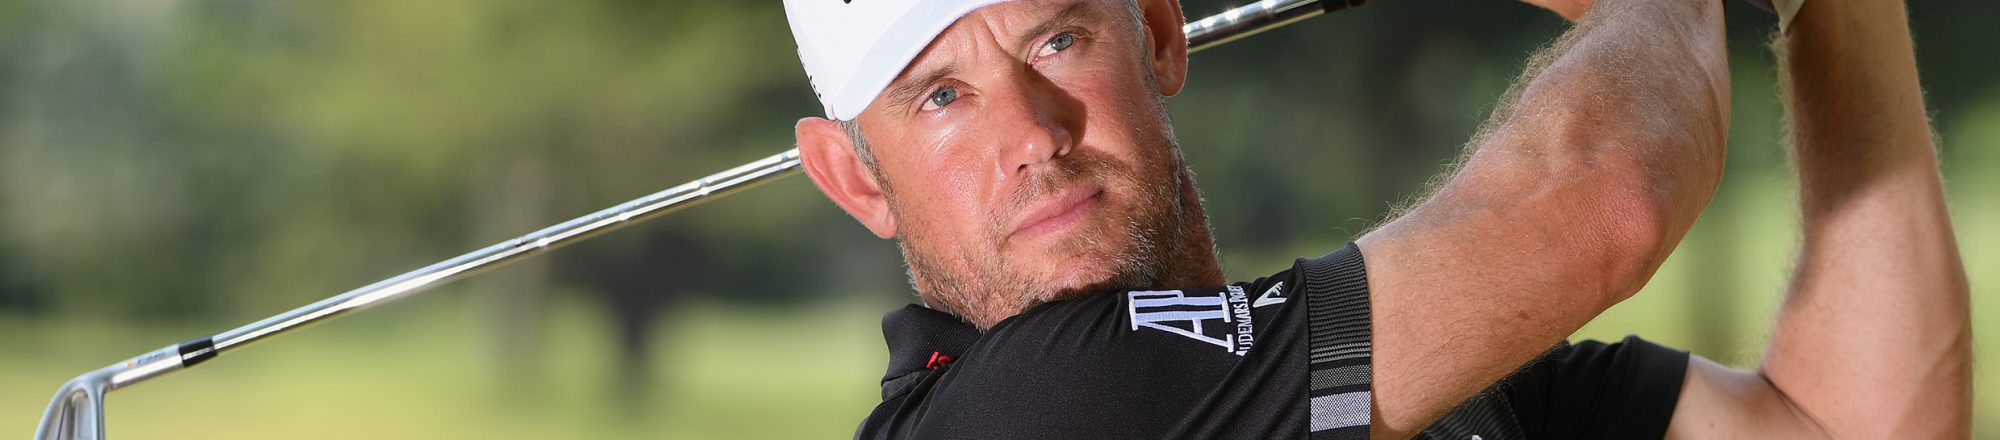 From junior champion to World No. 1: How Westwood found success by keeping things familiar